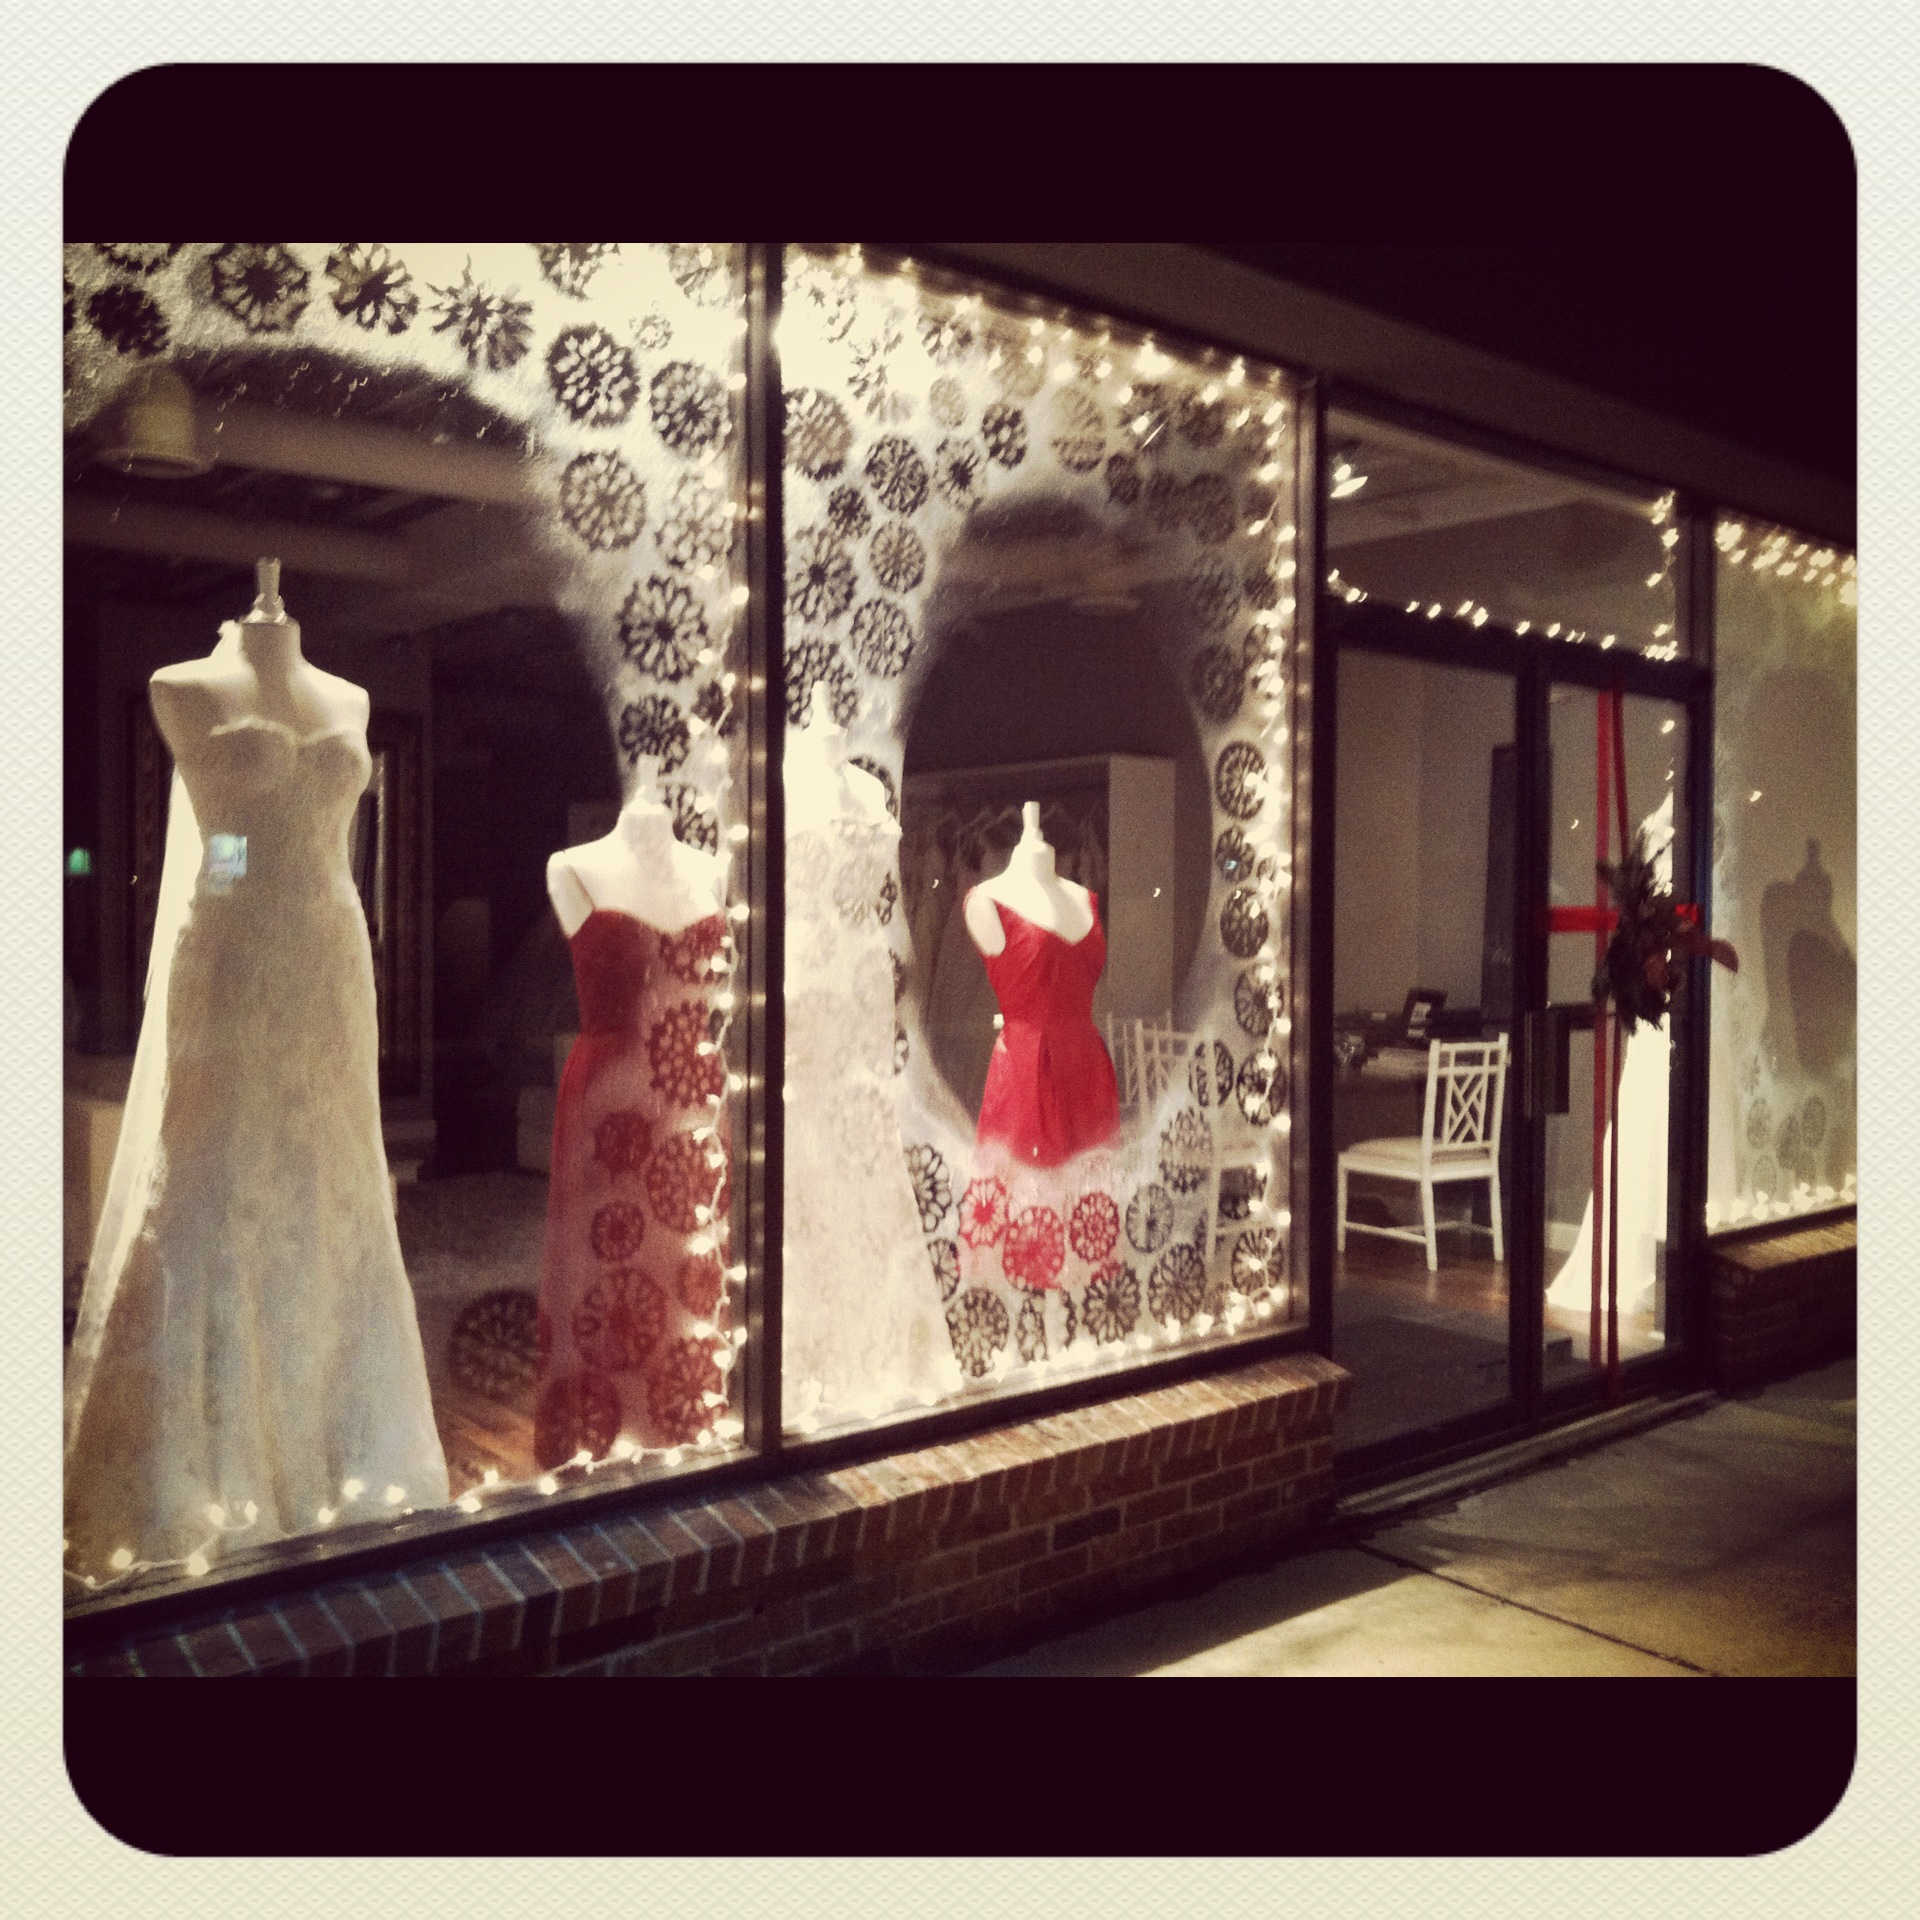 Wedding Gown Display: New Window Display - Winter